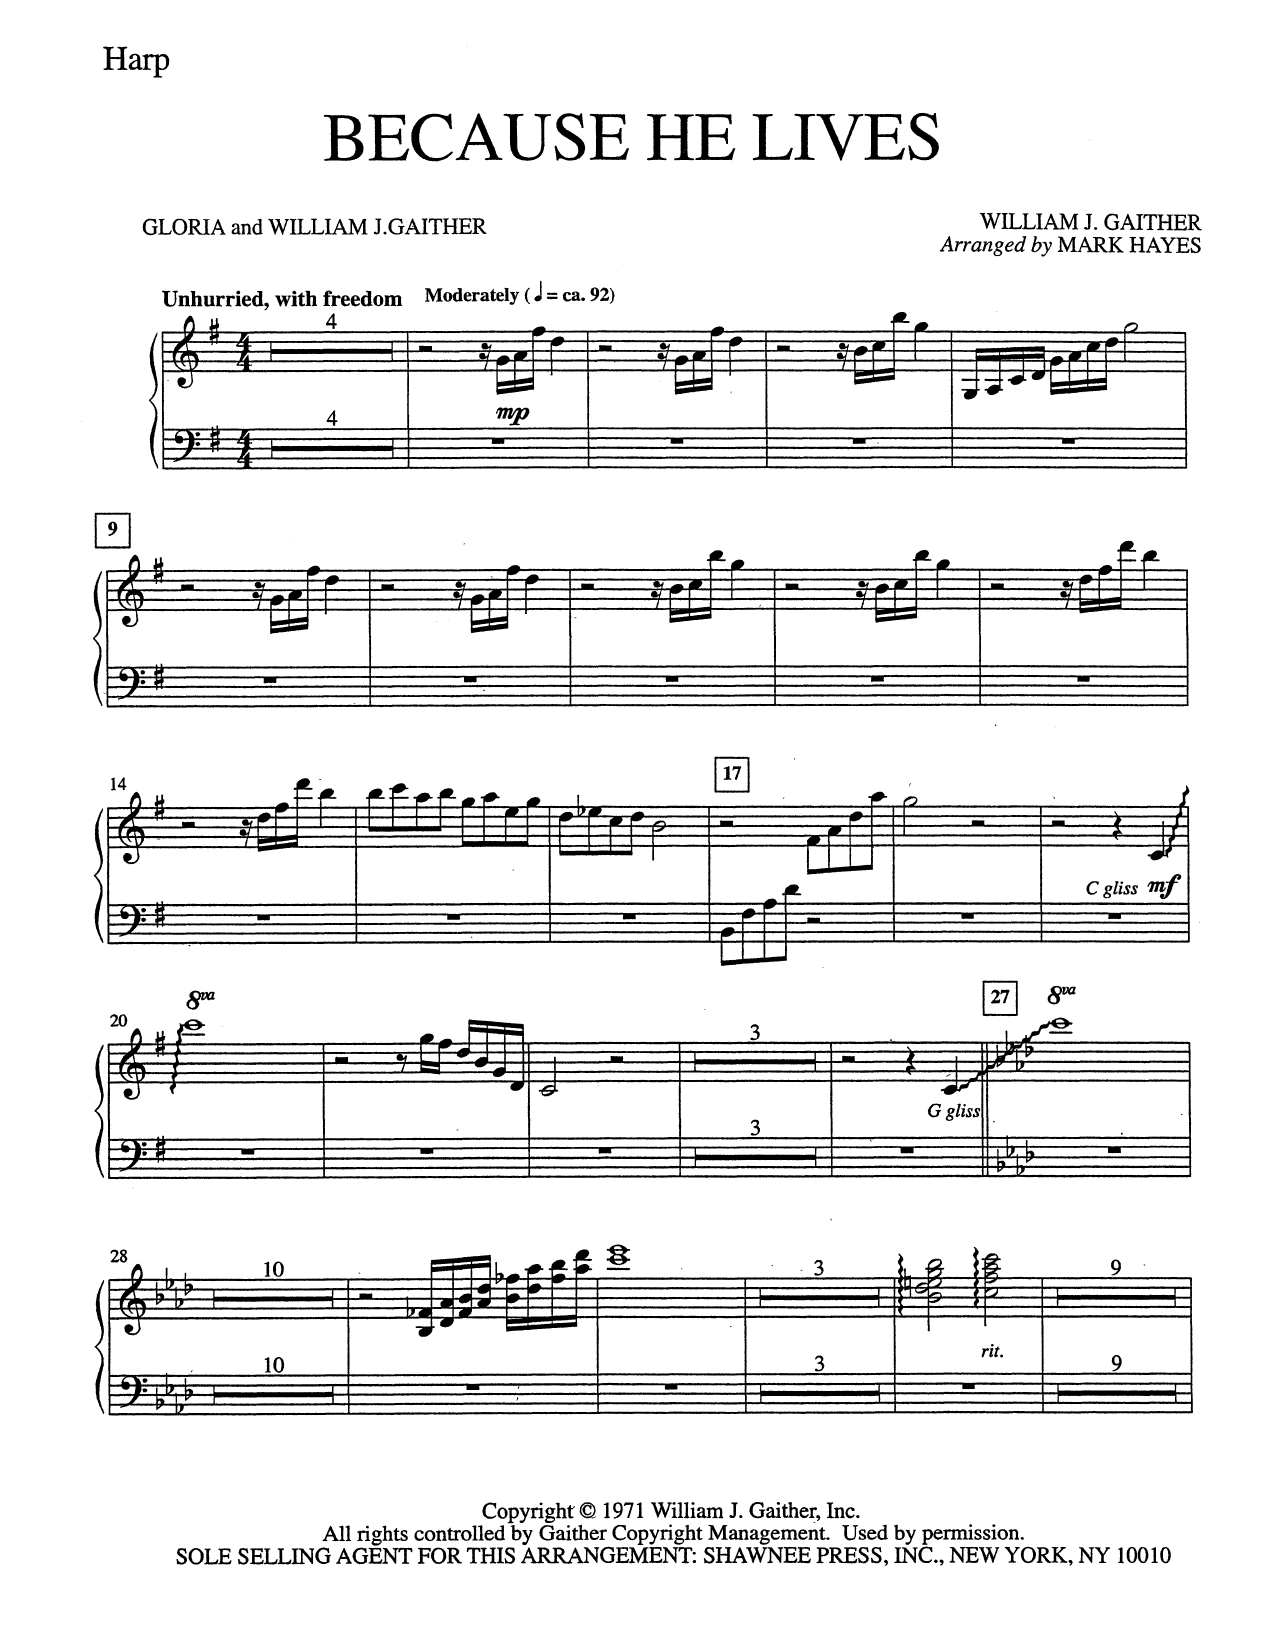 Mark Hayes Because He Lives - Harp sheet music notes and chords. Download Printable PDF.